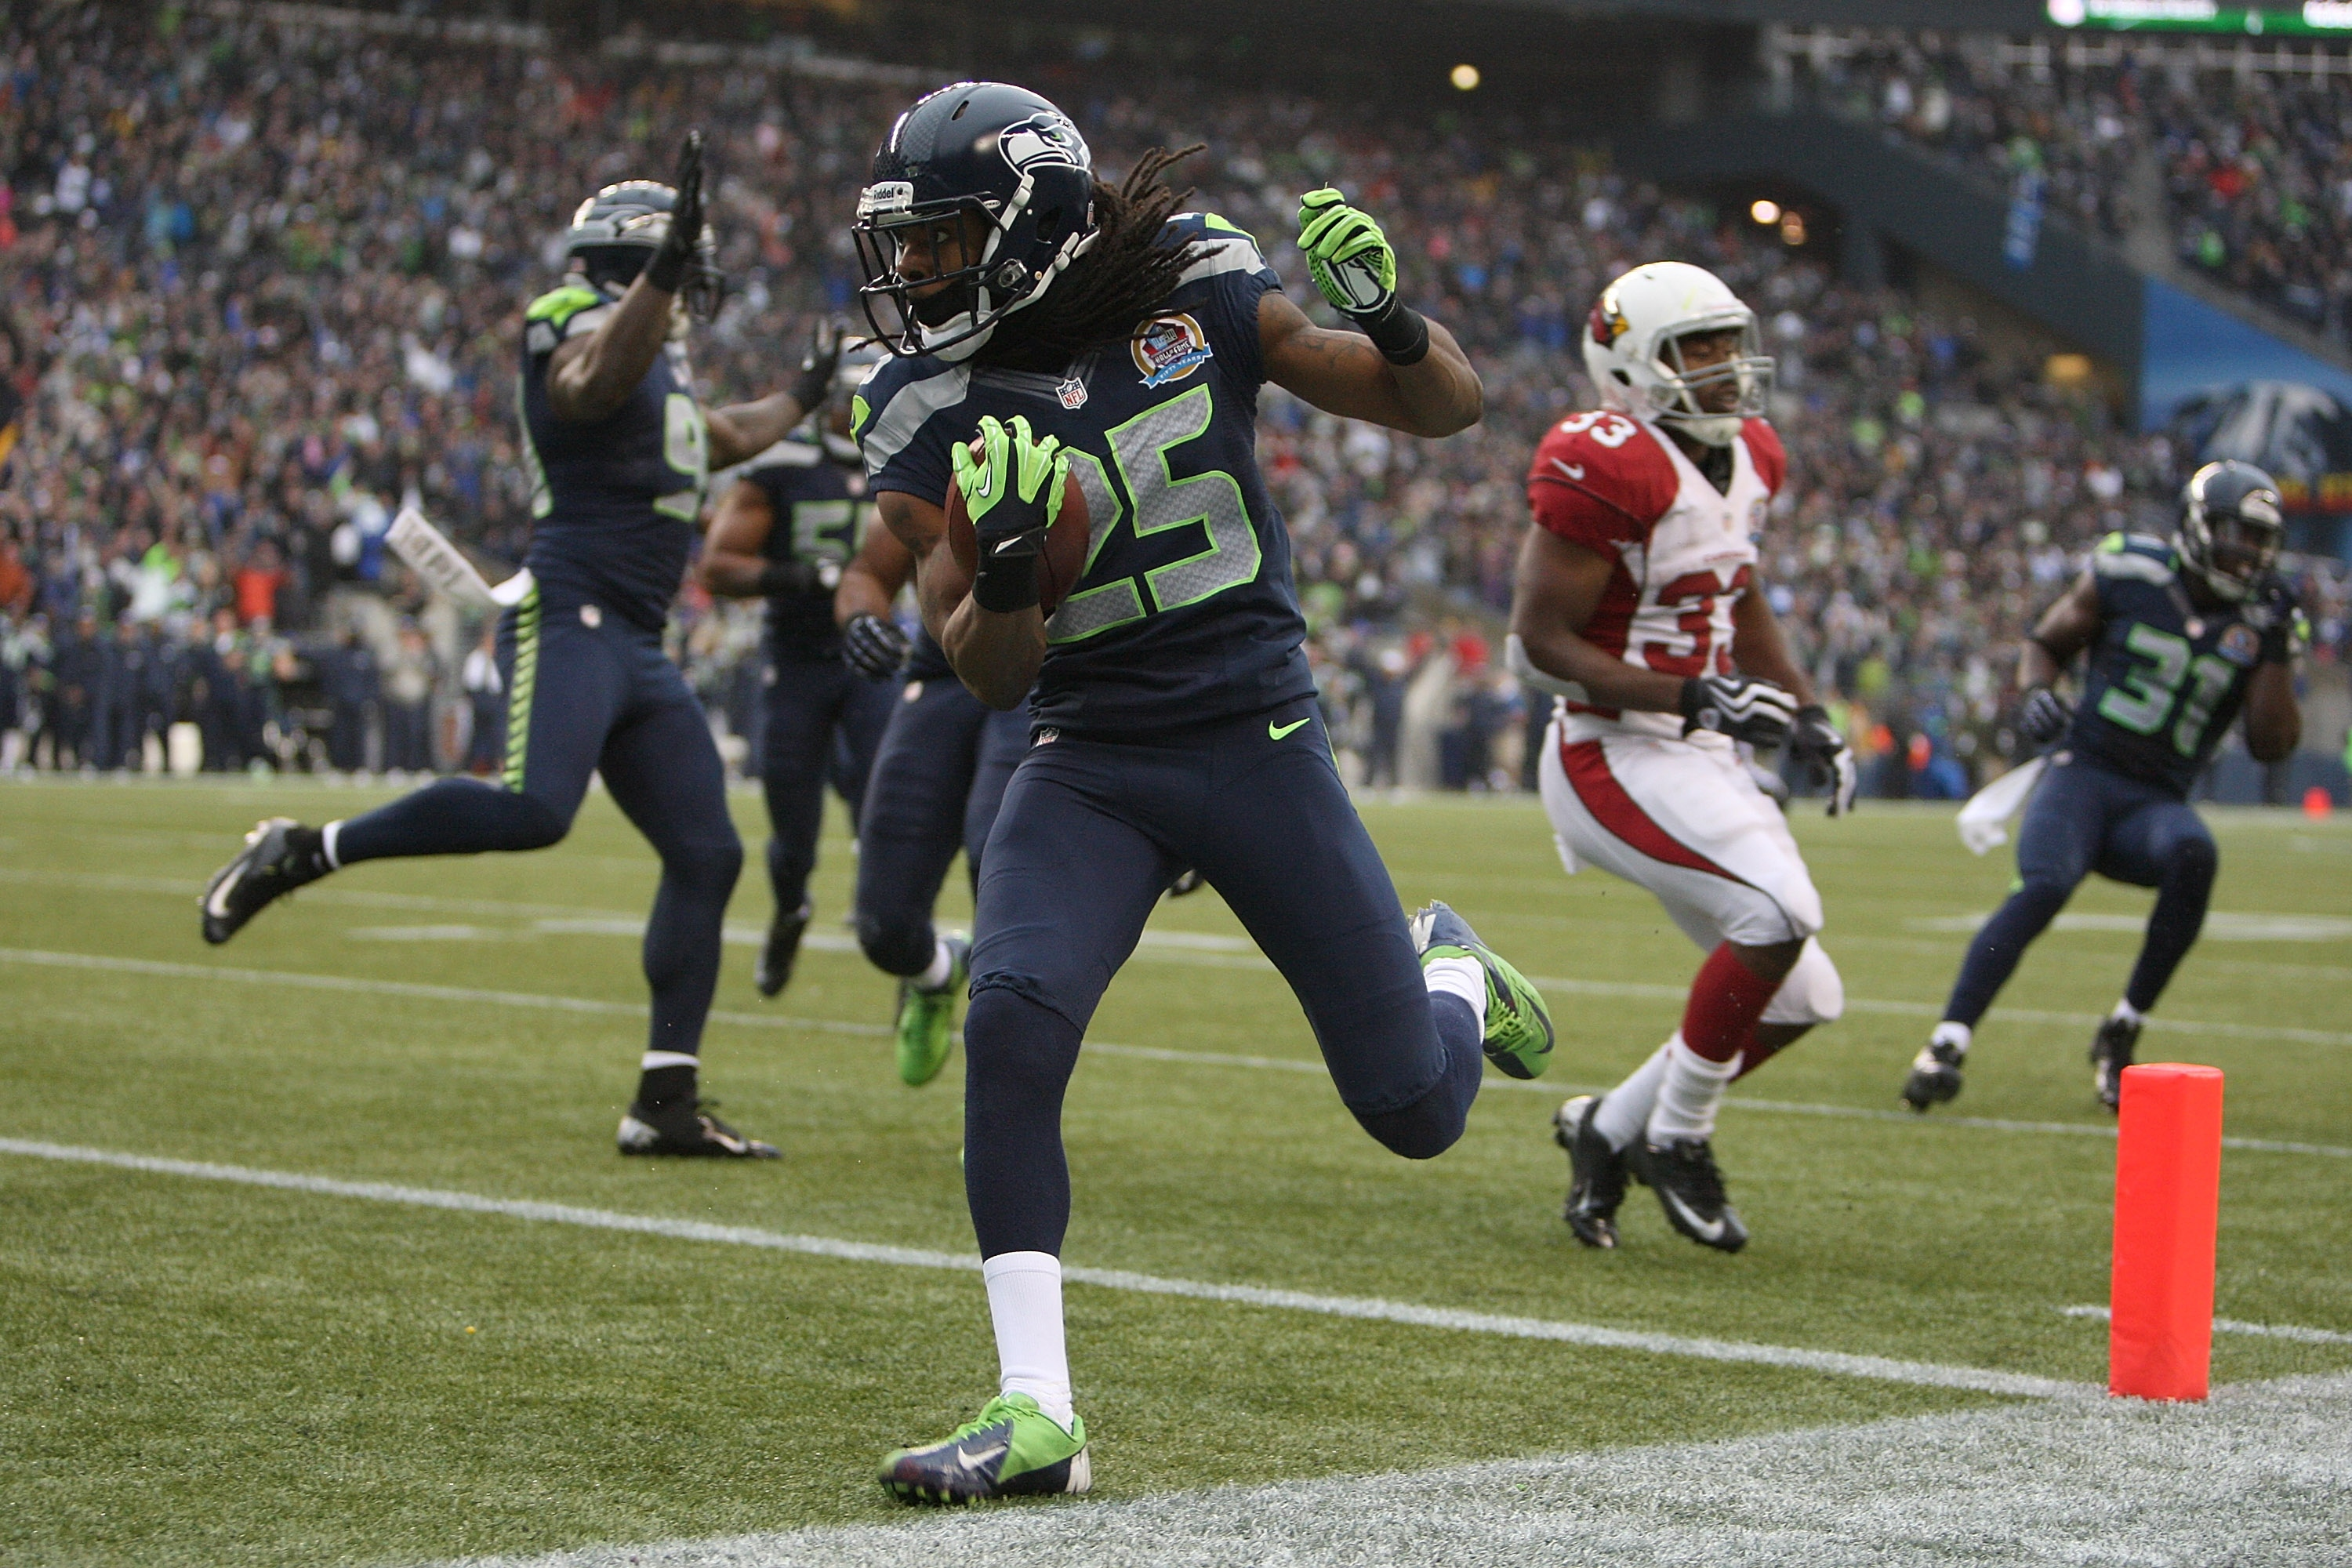 Richard Sherman scores a touchdown on a interception return against the Cardinals. (Getty Images)